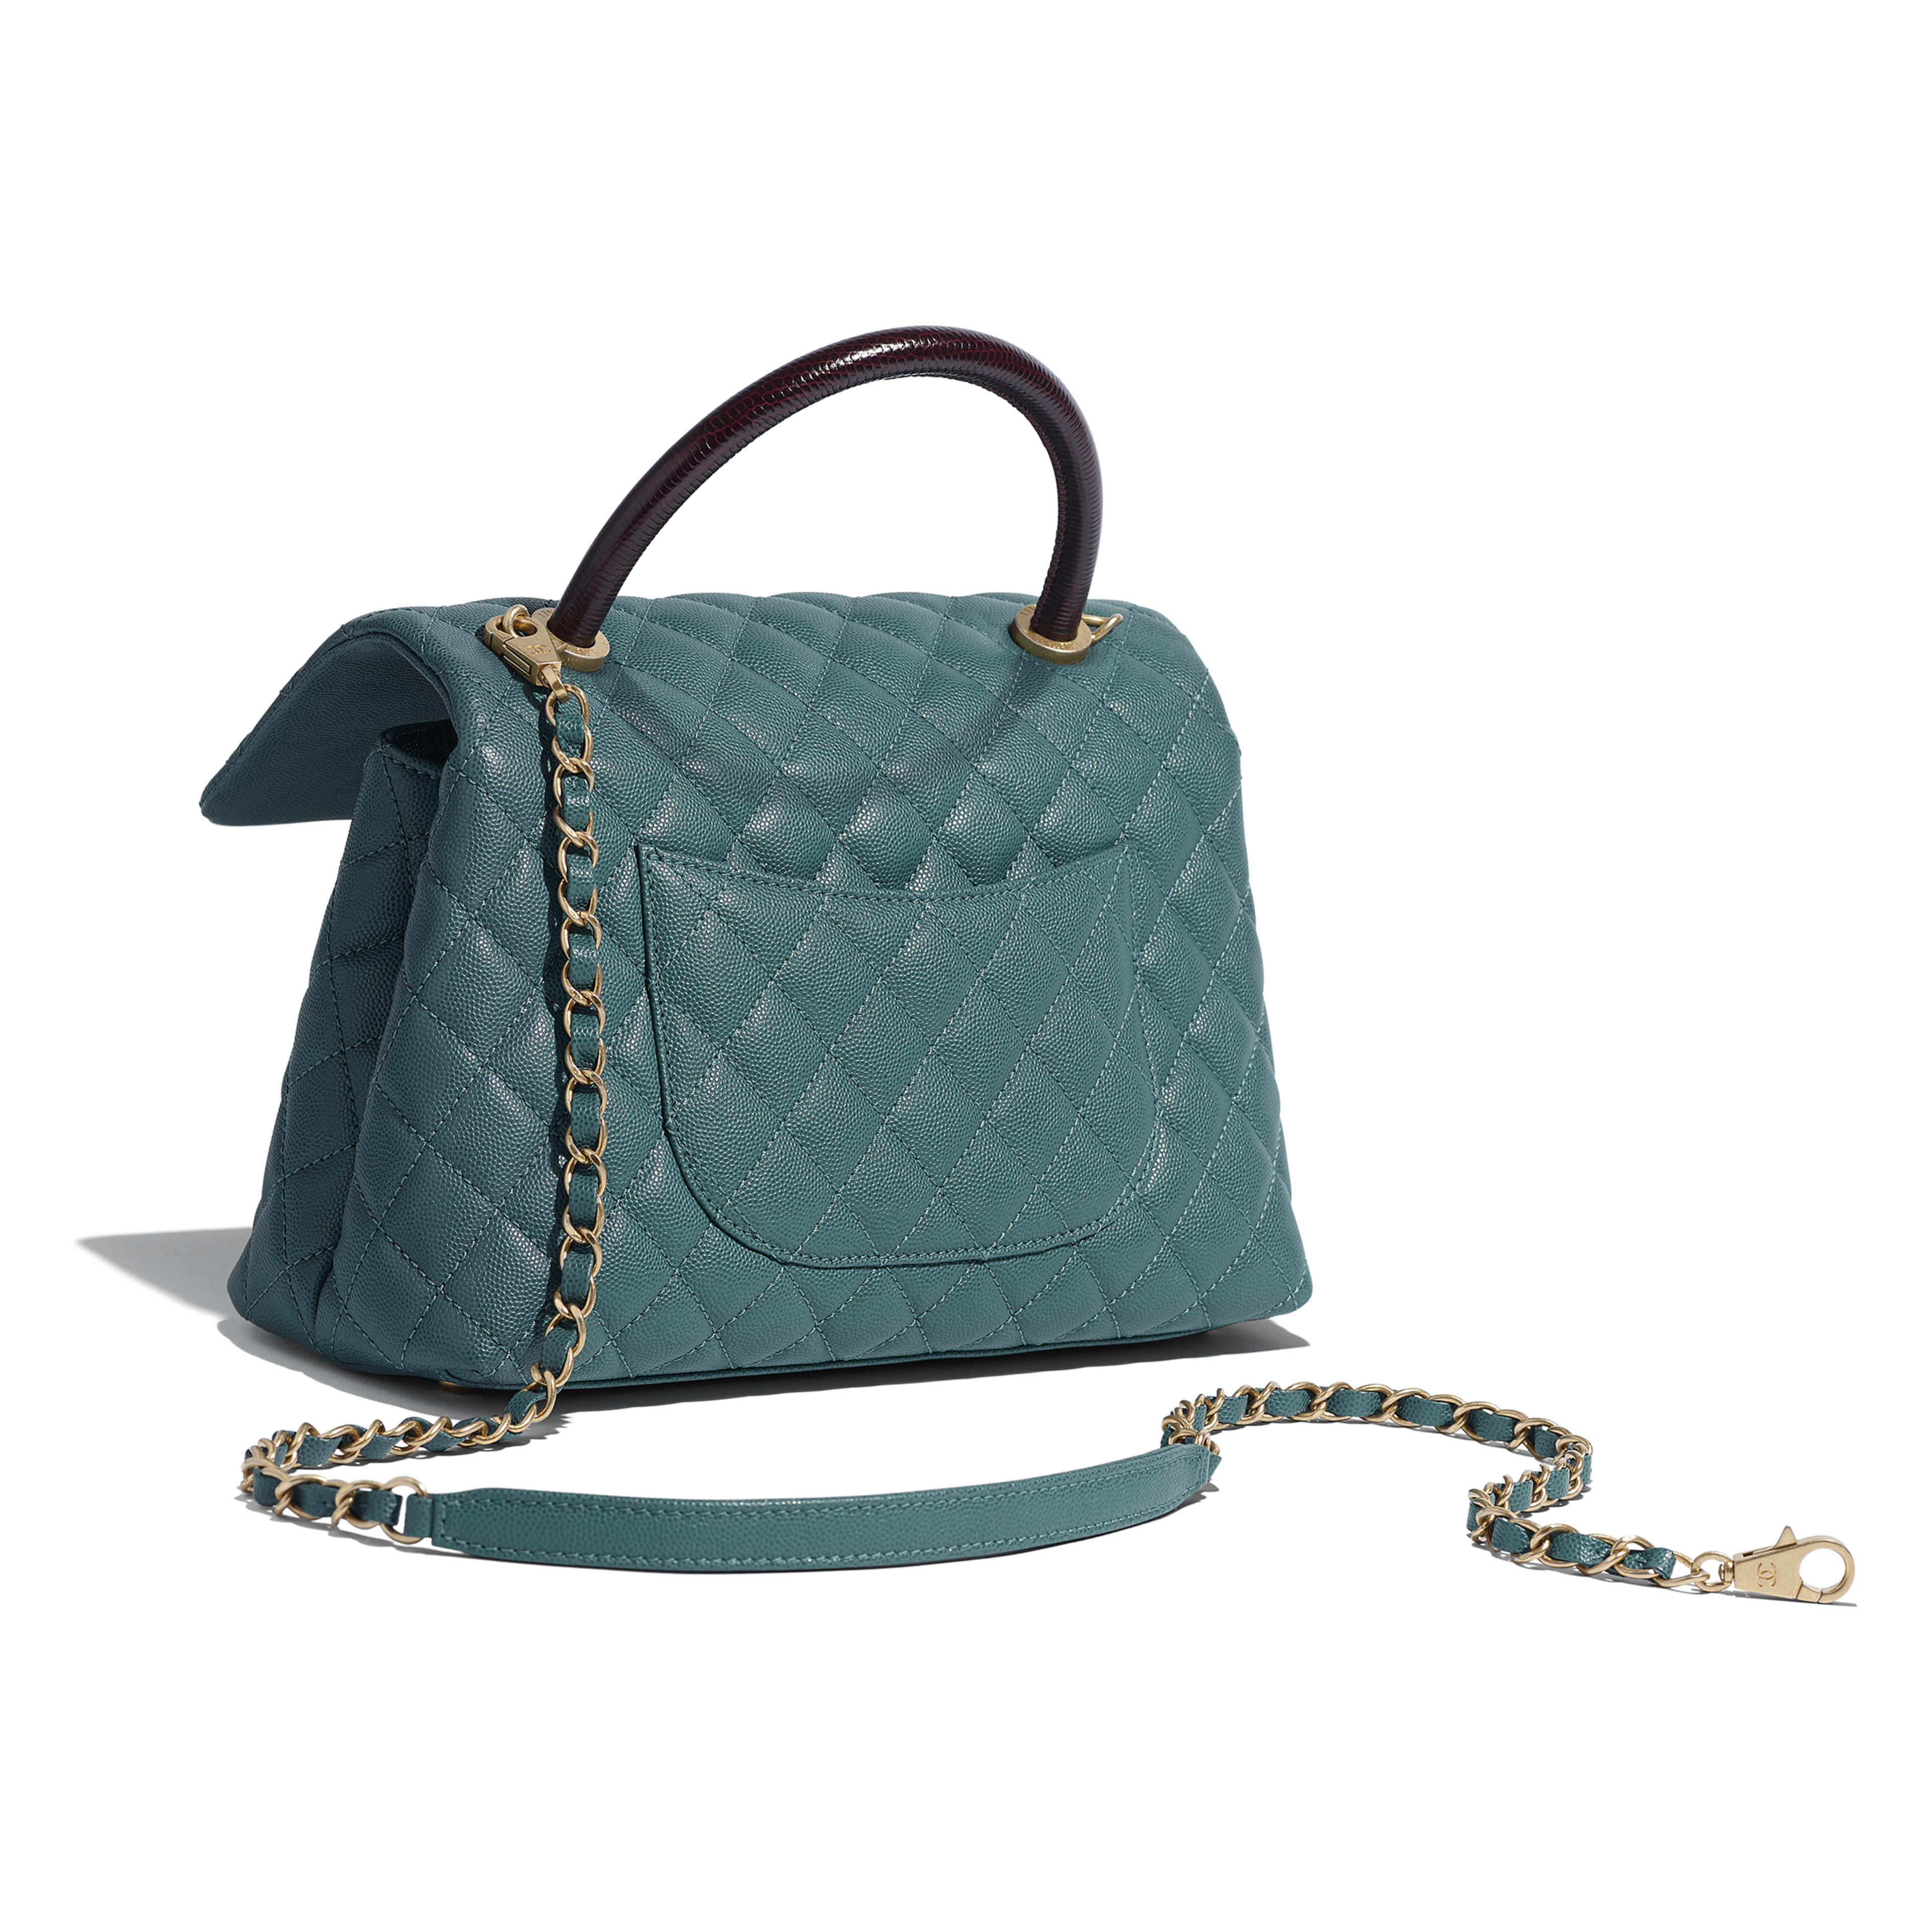 Flap Bag with Top Handle - Turquoise & Burgundy - Grained Calfskin, Lizard Embossed Calfskin & Gold-Tone Metal - Other view - see full sized version